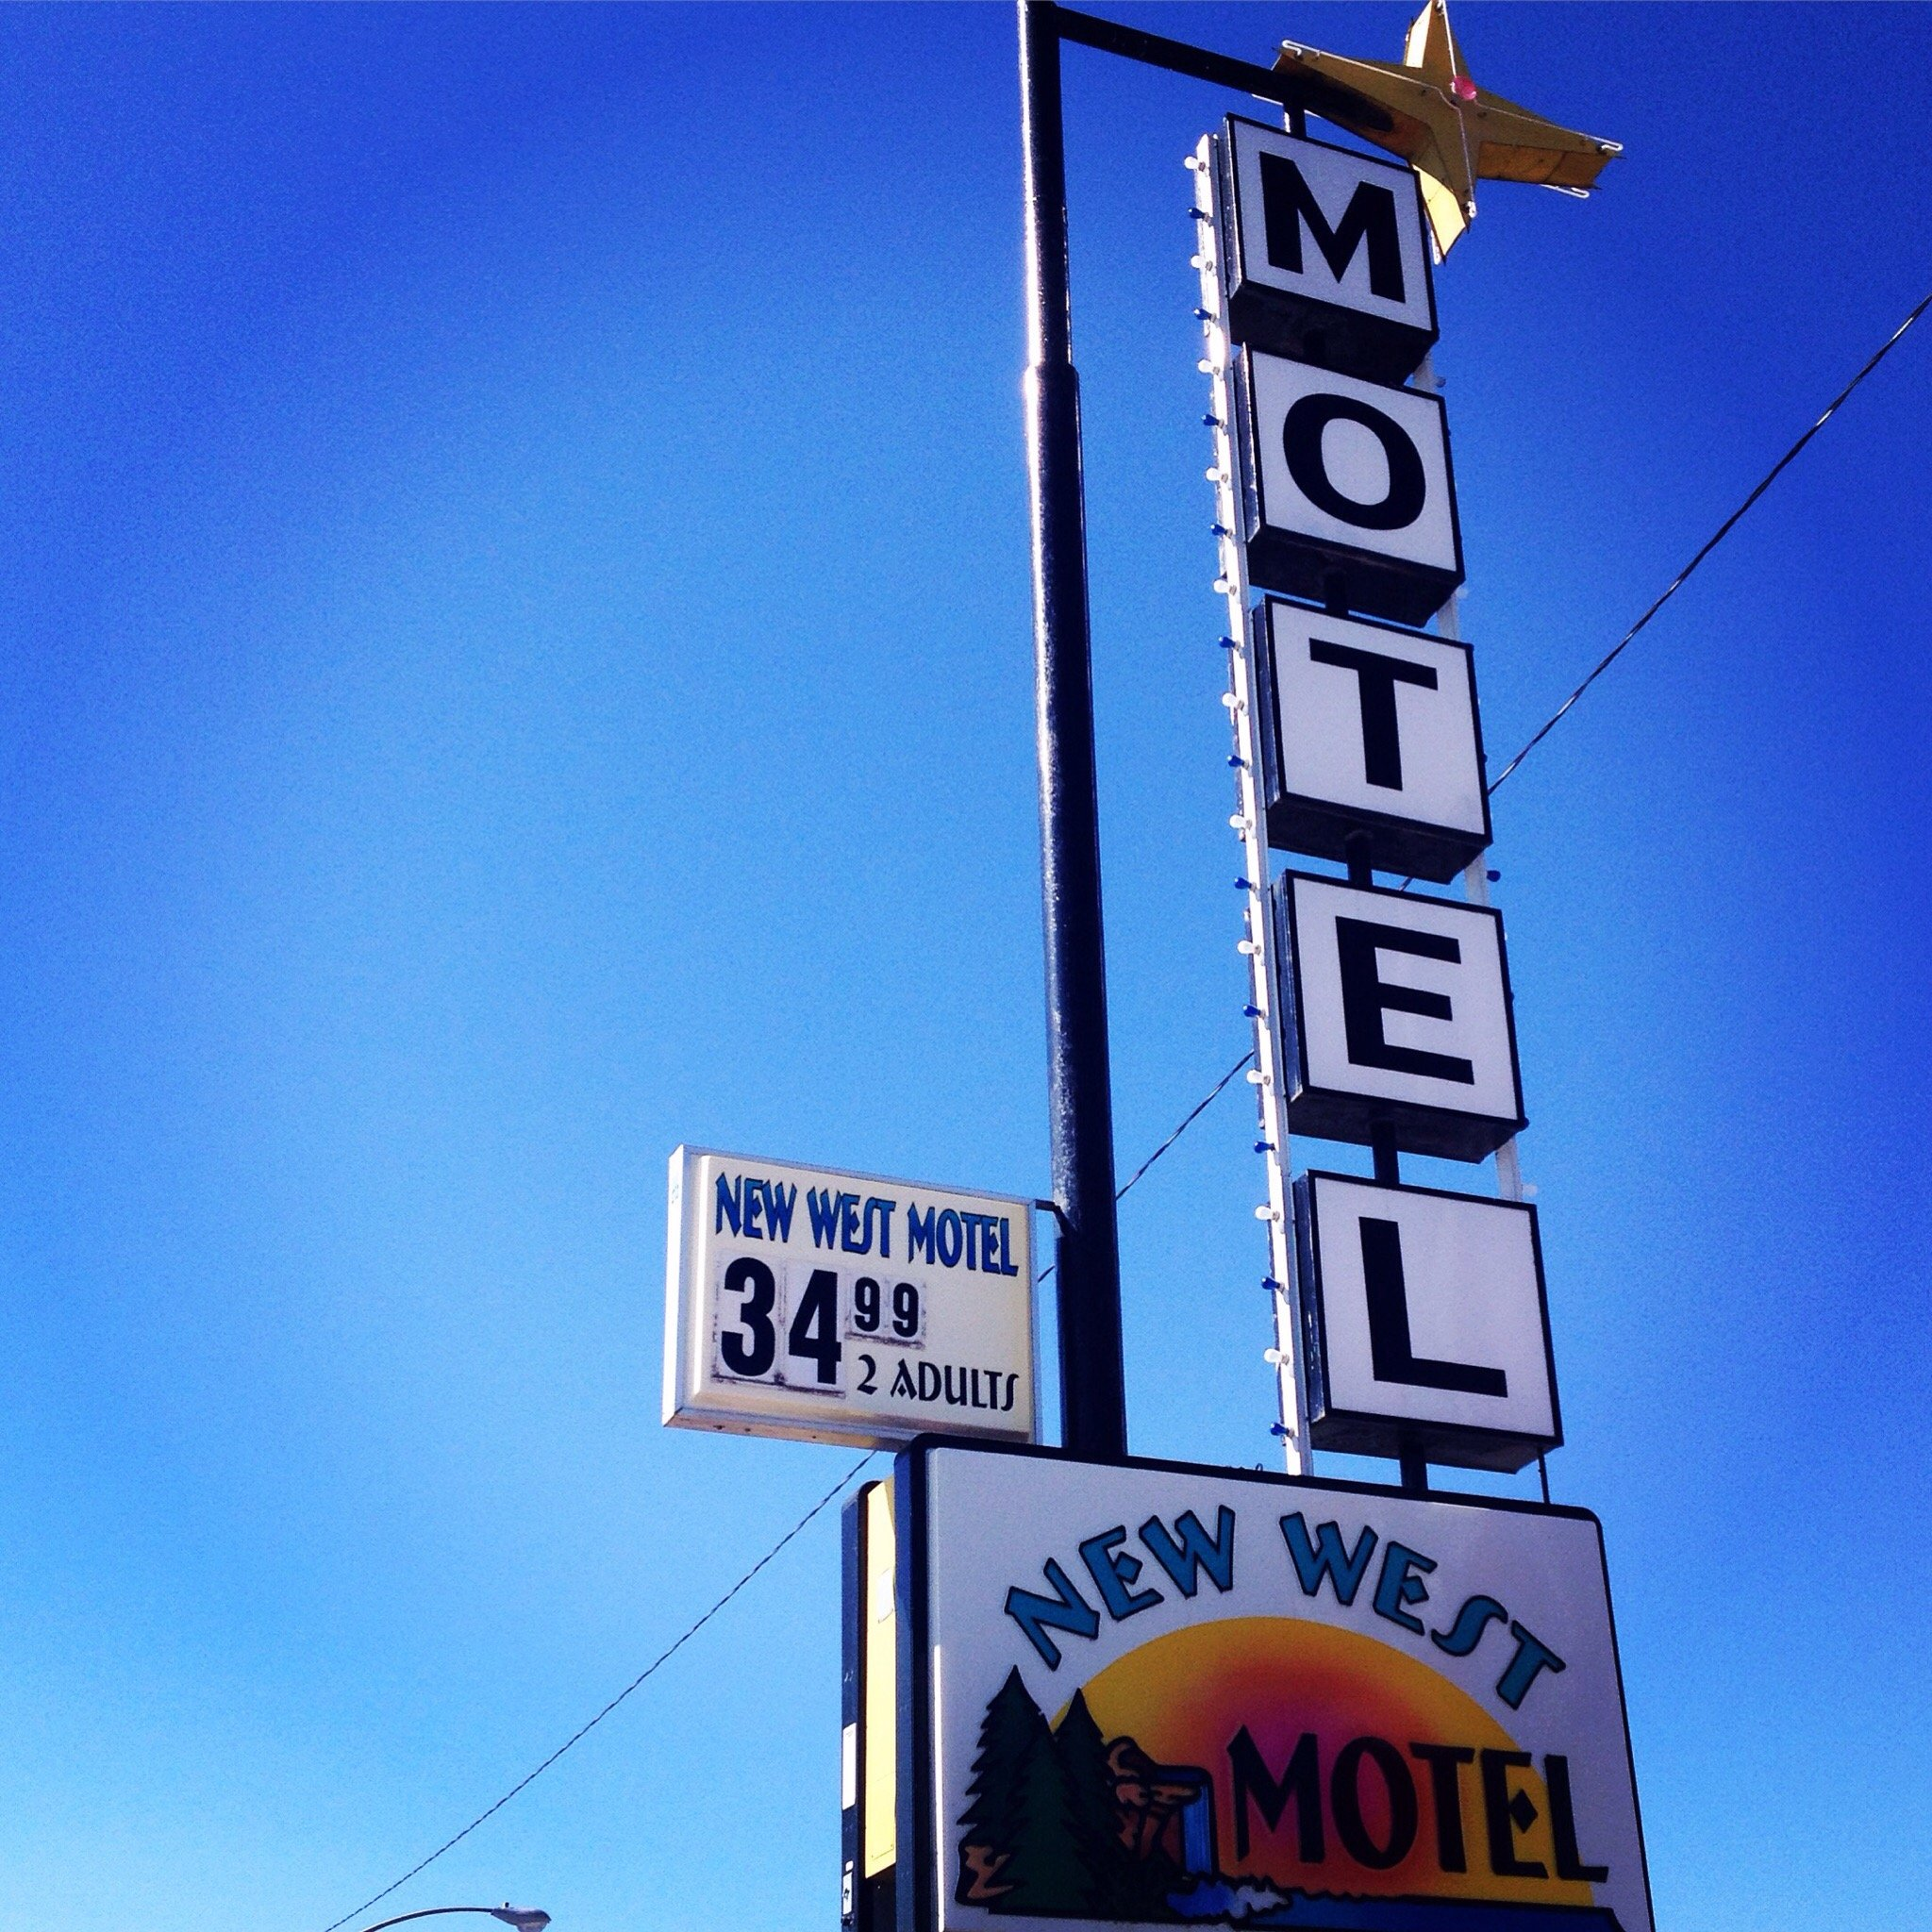 New West Motel